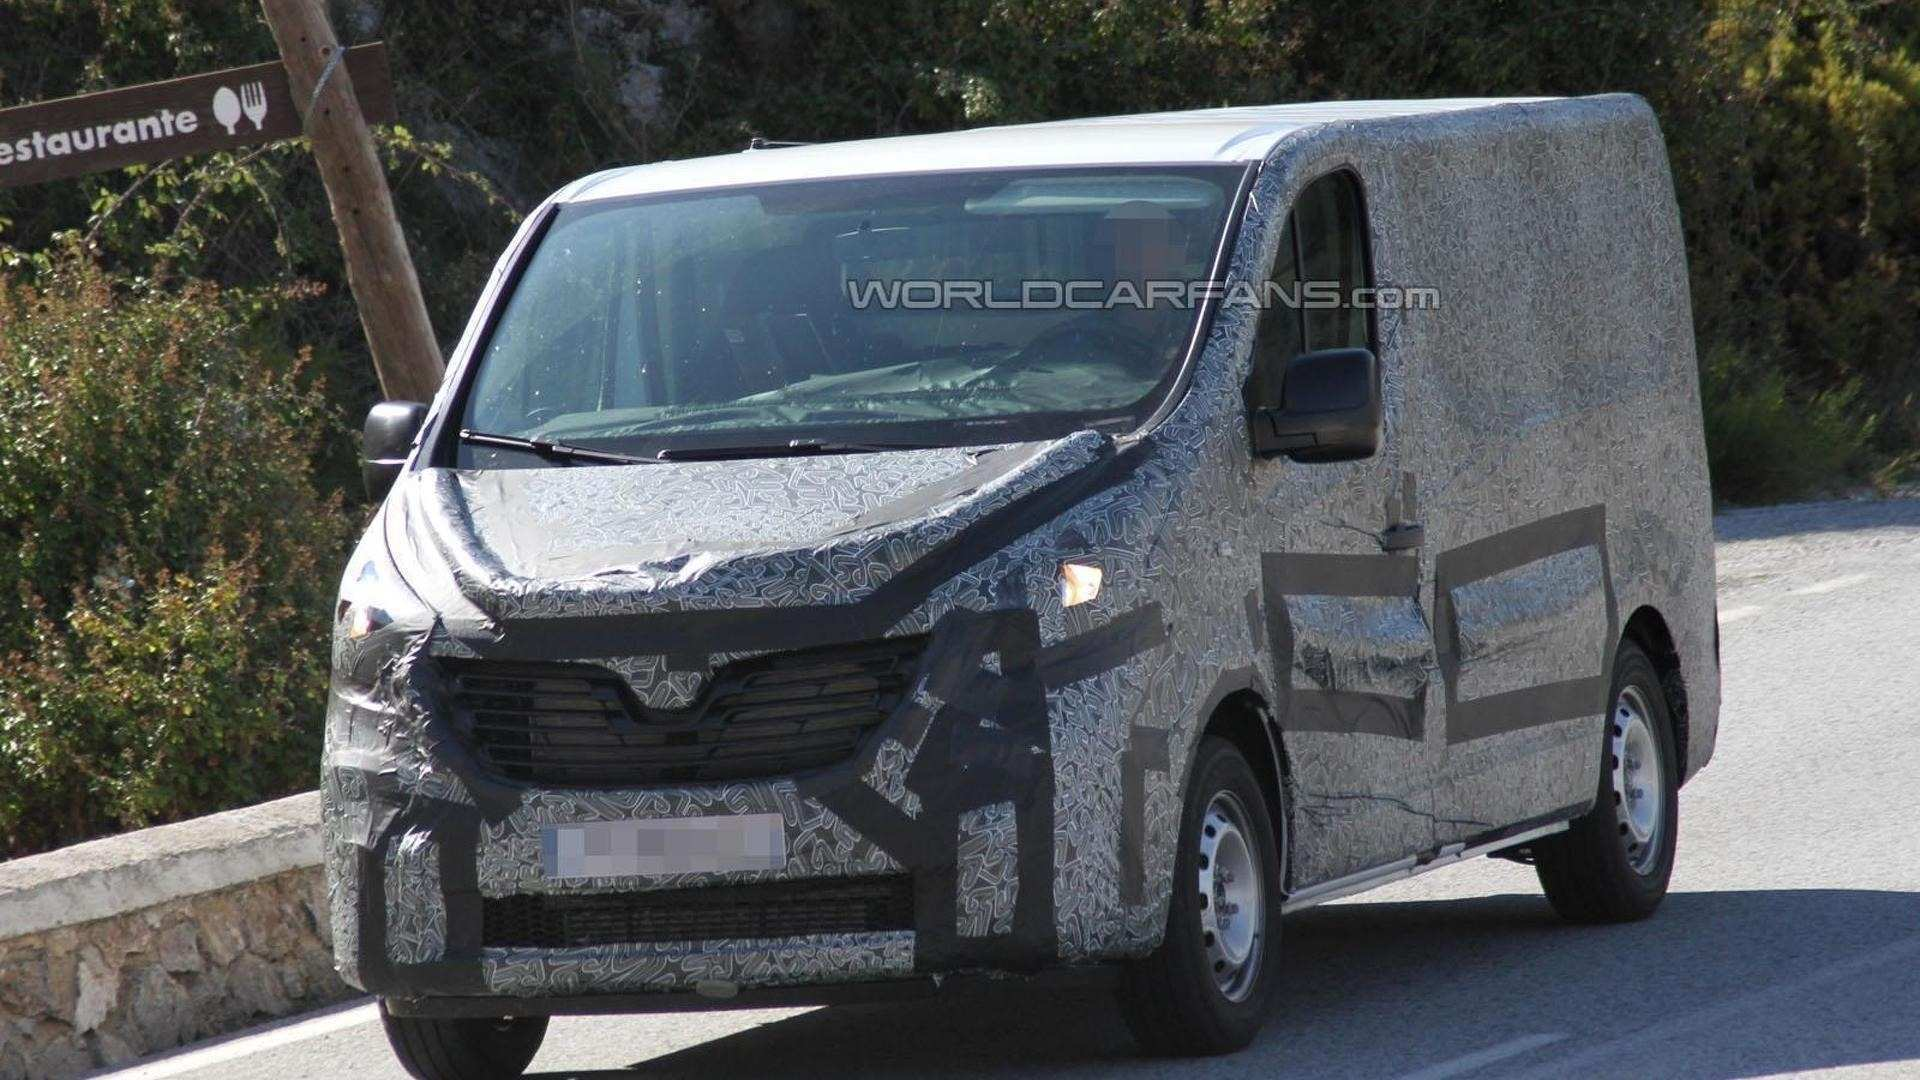 89 Gallery of 2019 Renault Trafic New Review for 2019 Renault Trafic